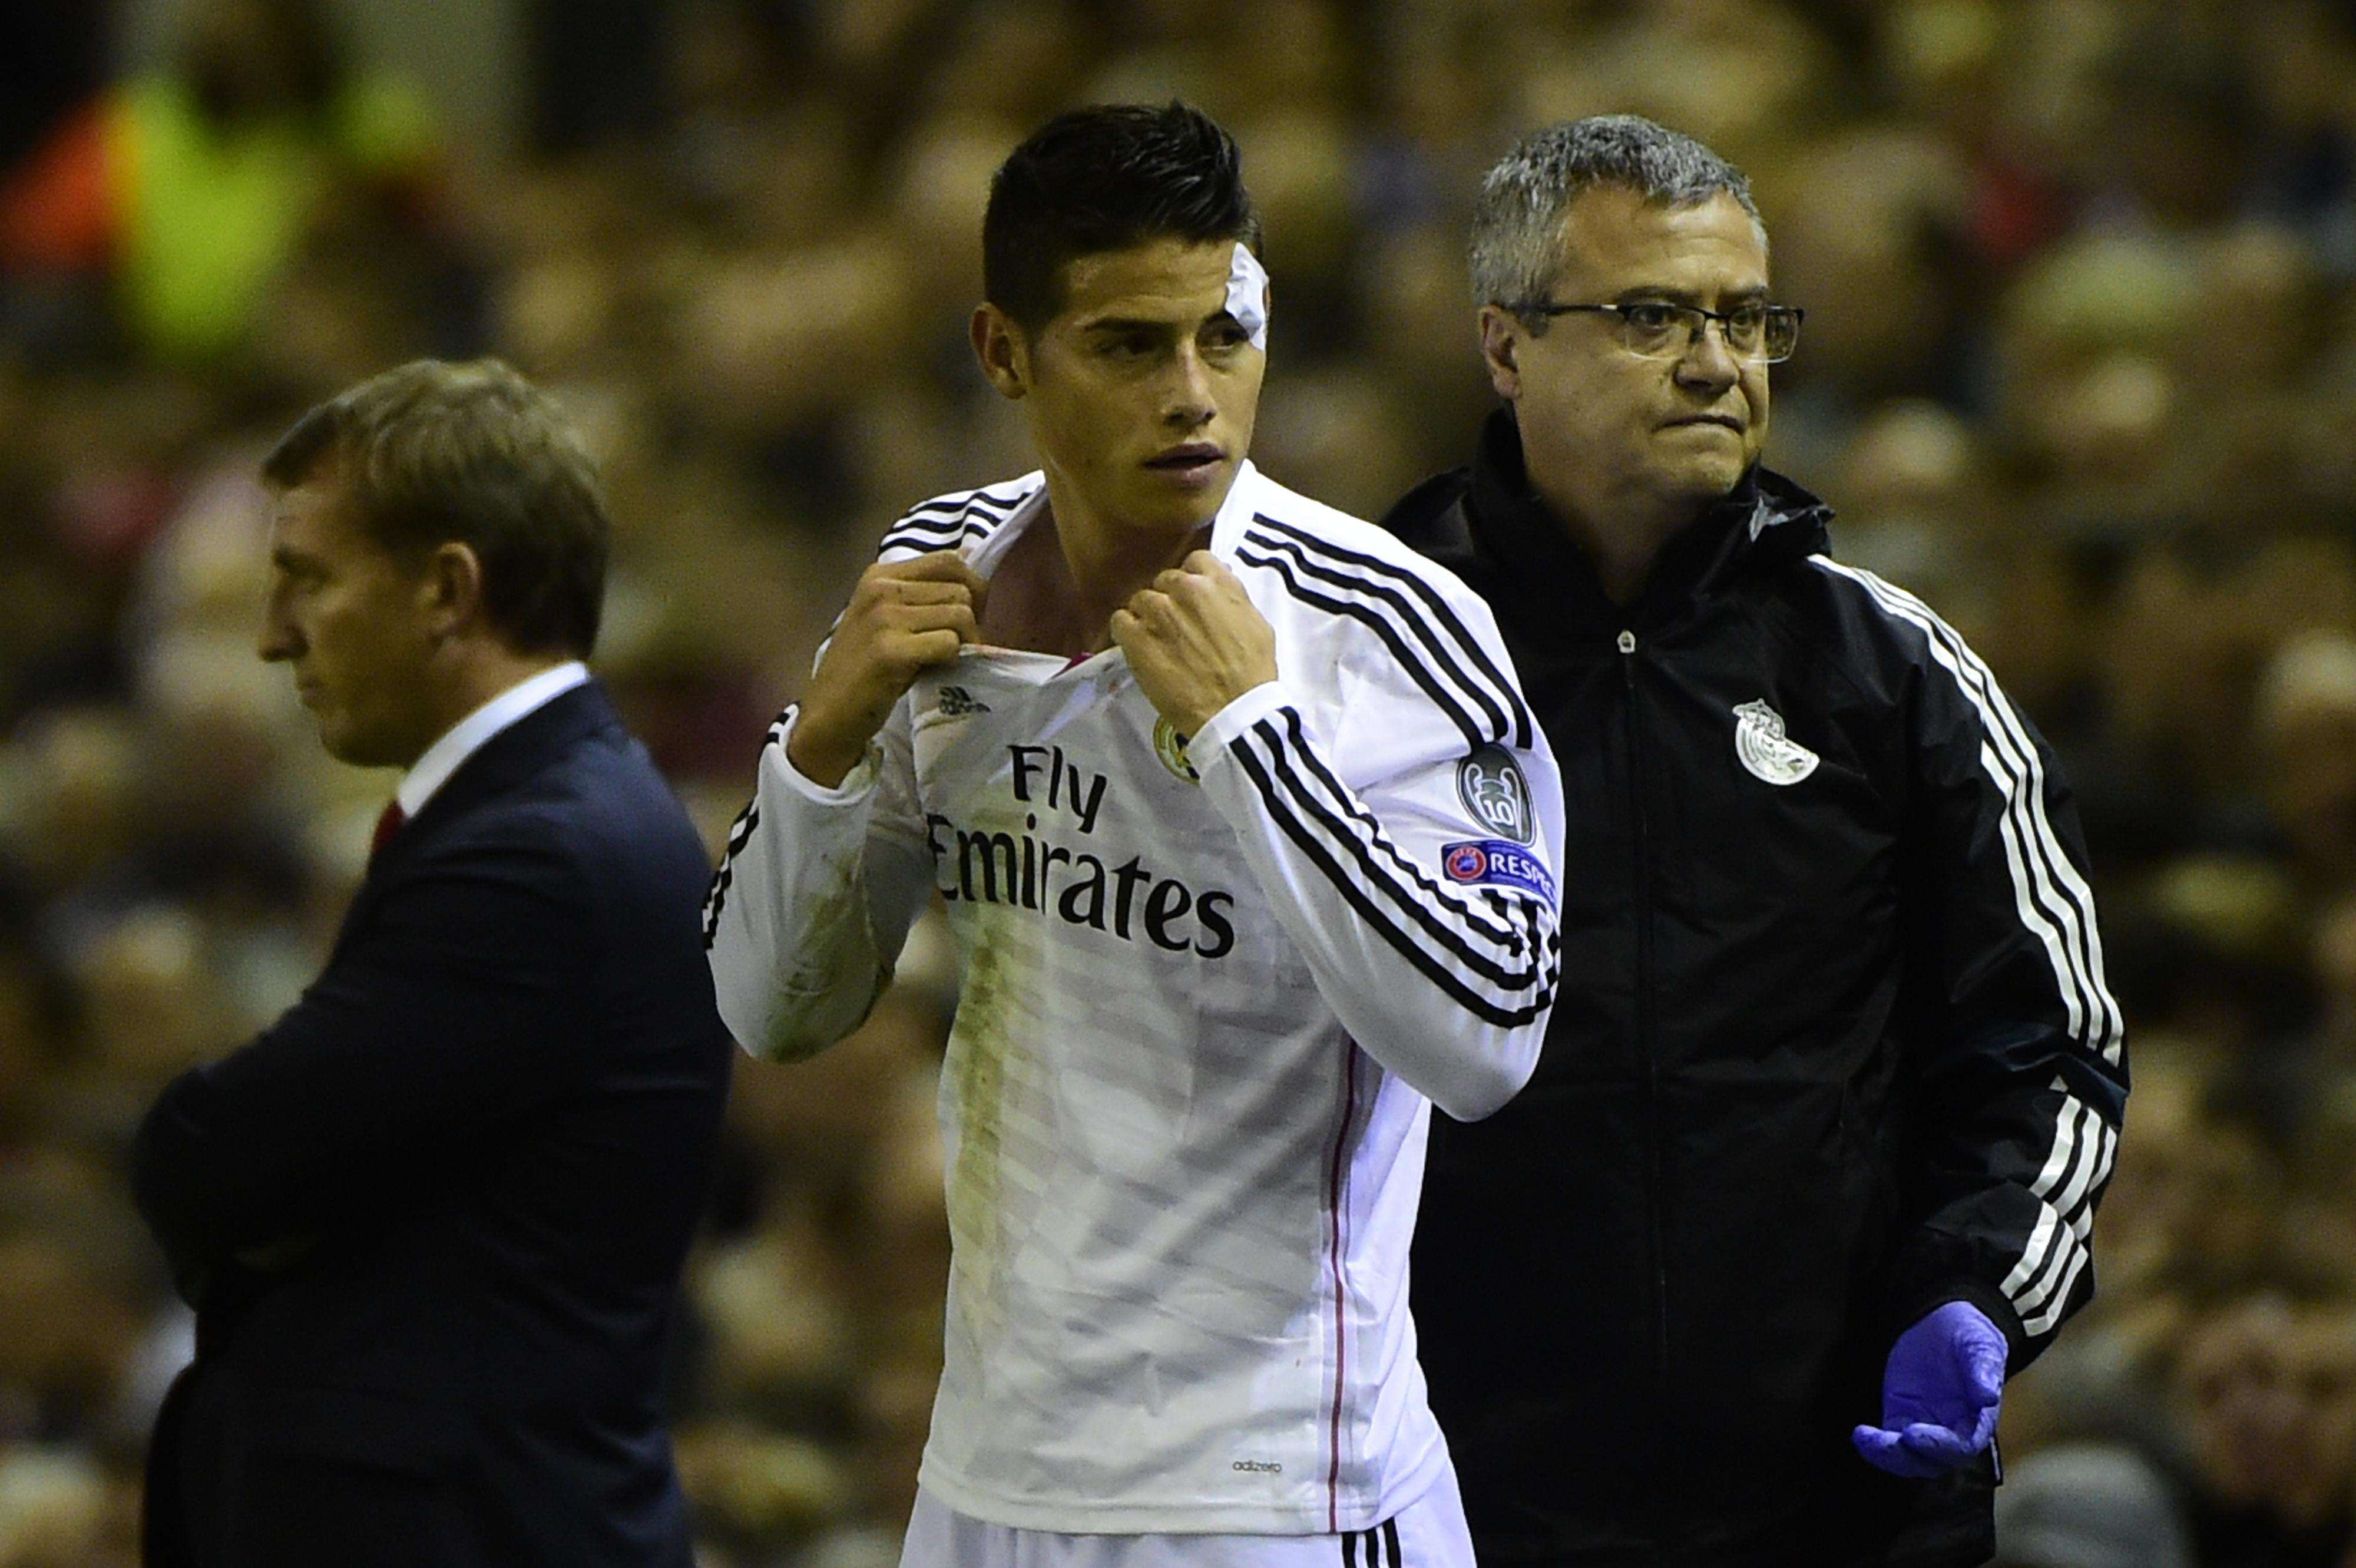 James Rodríguez con el Real Madrid. Foto: AFP